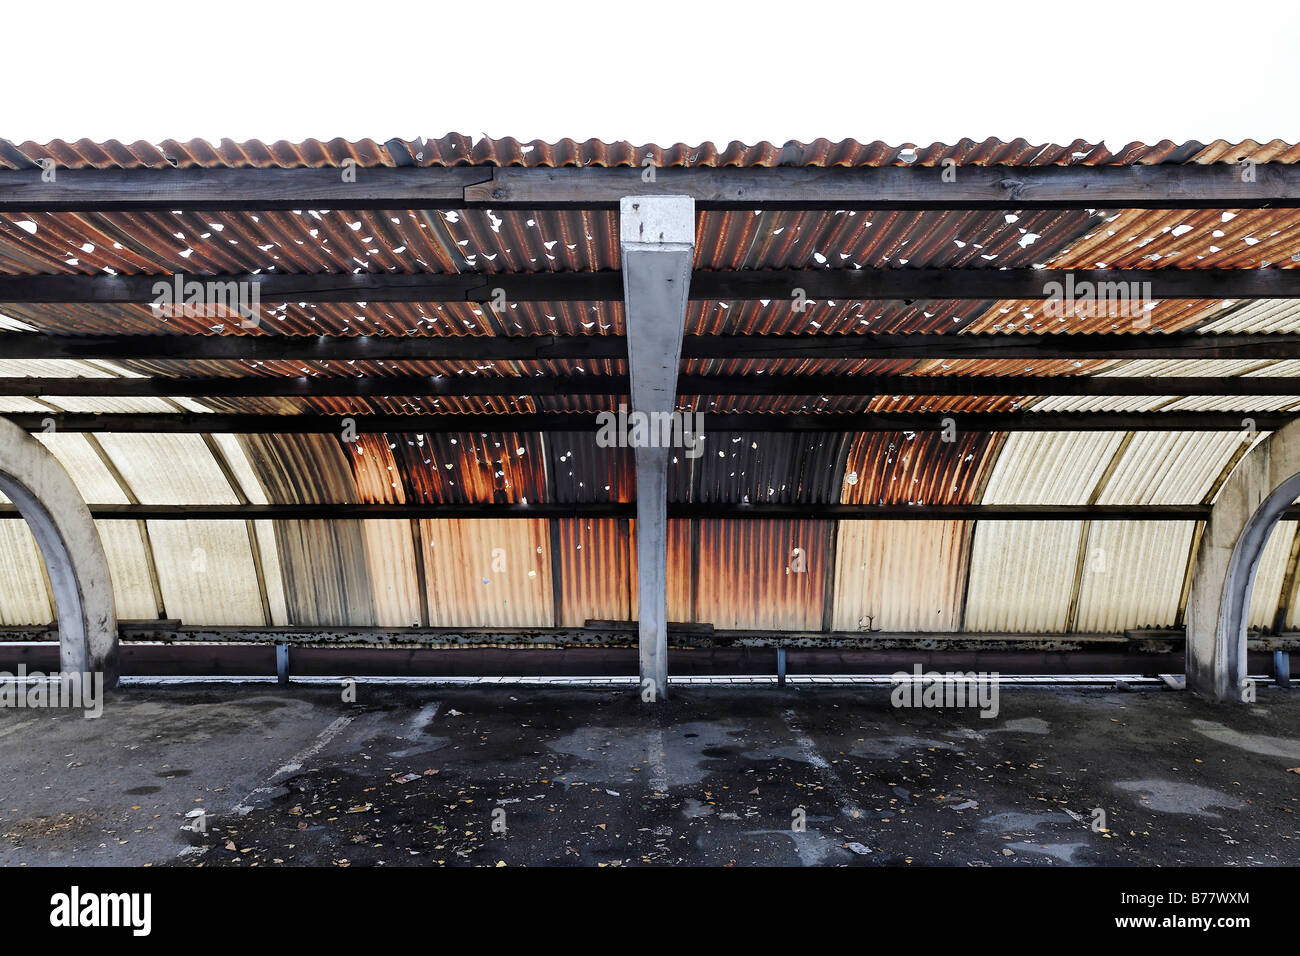 Corrugated roof made of plastic, holes caused by hail, brown colouring caused by factory fumes, factory parking - Stock Image